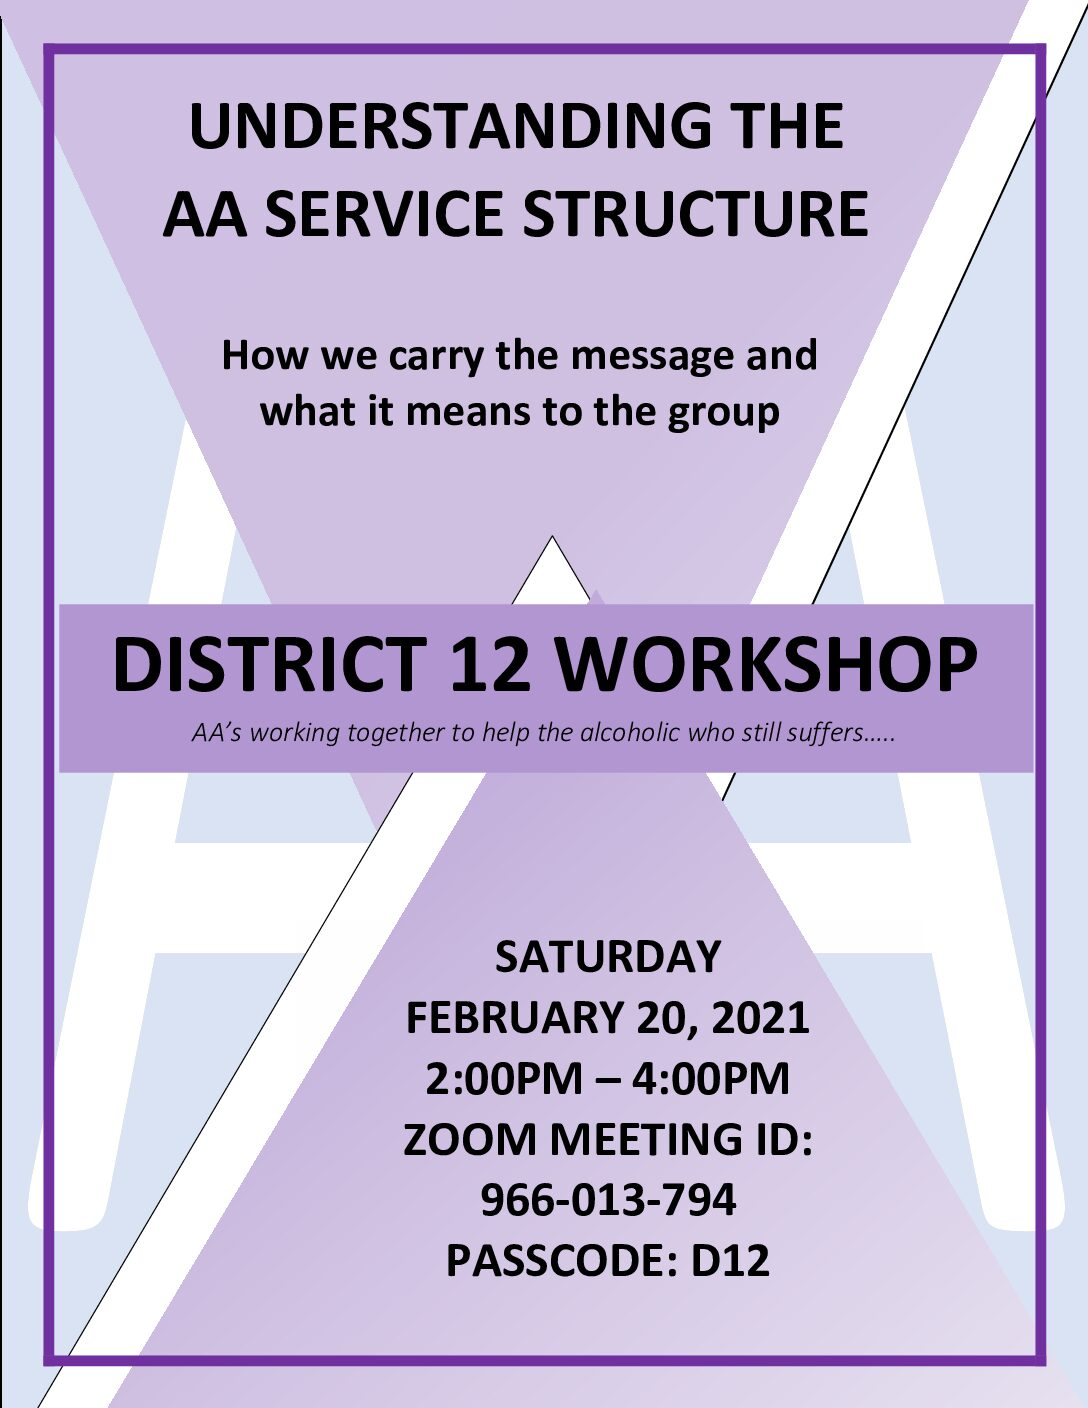 District 12 Workshop